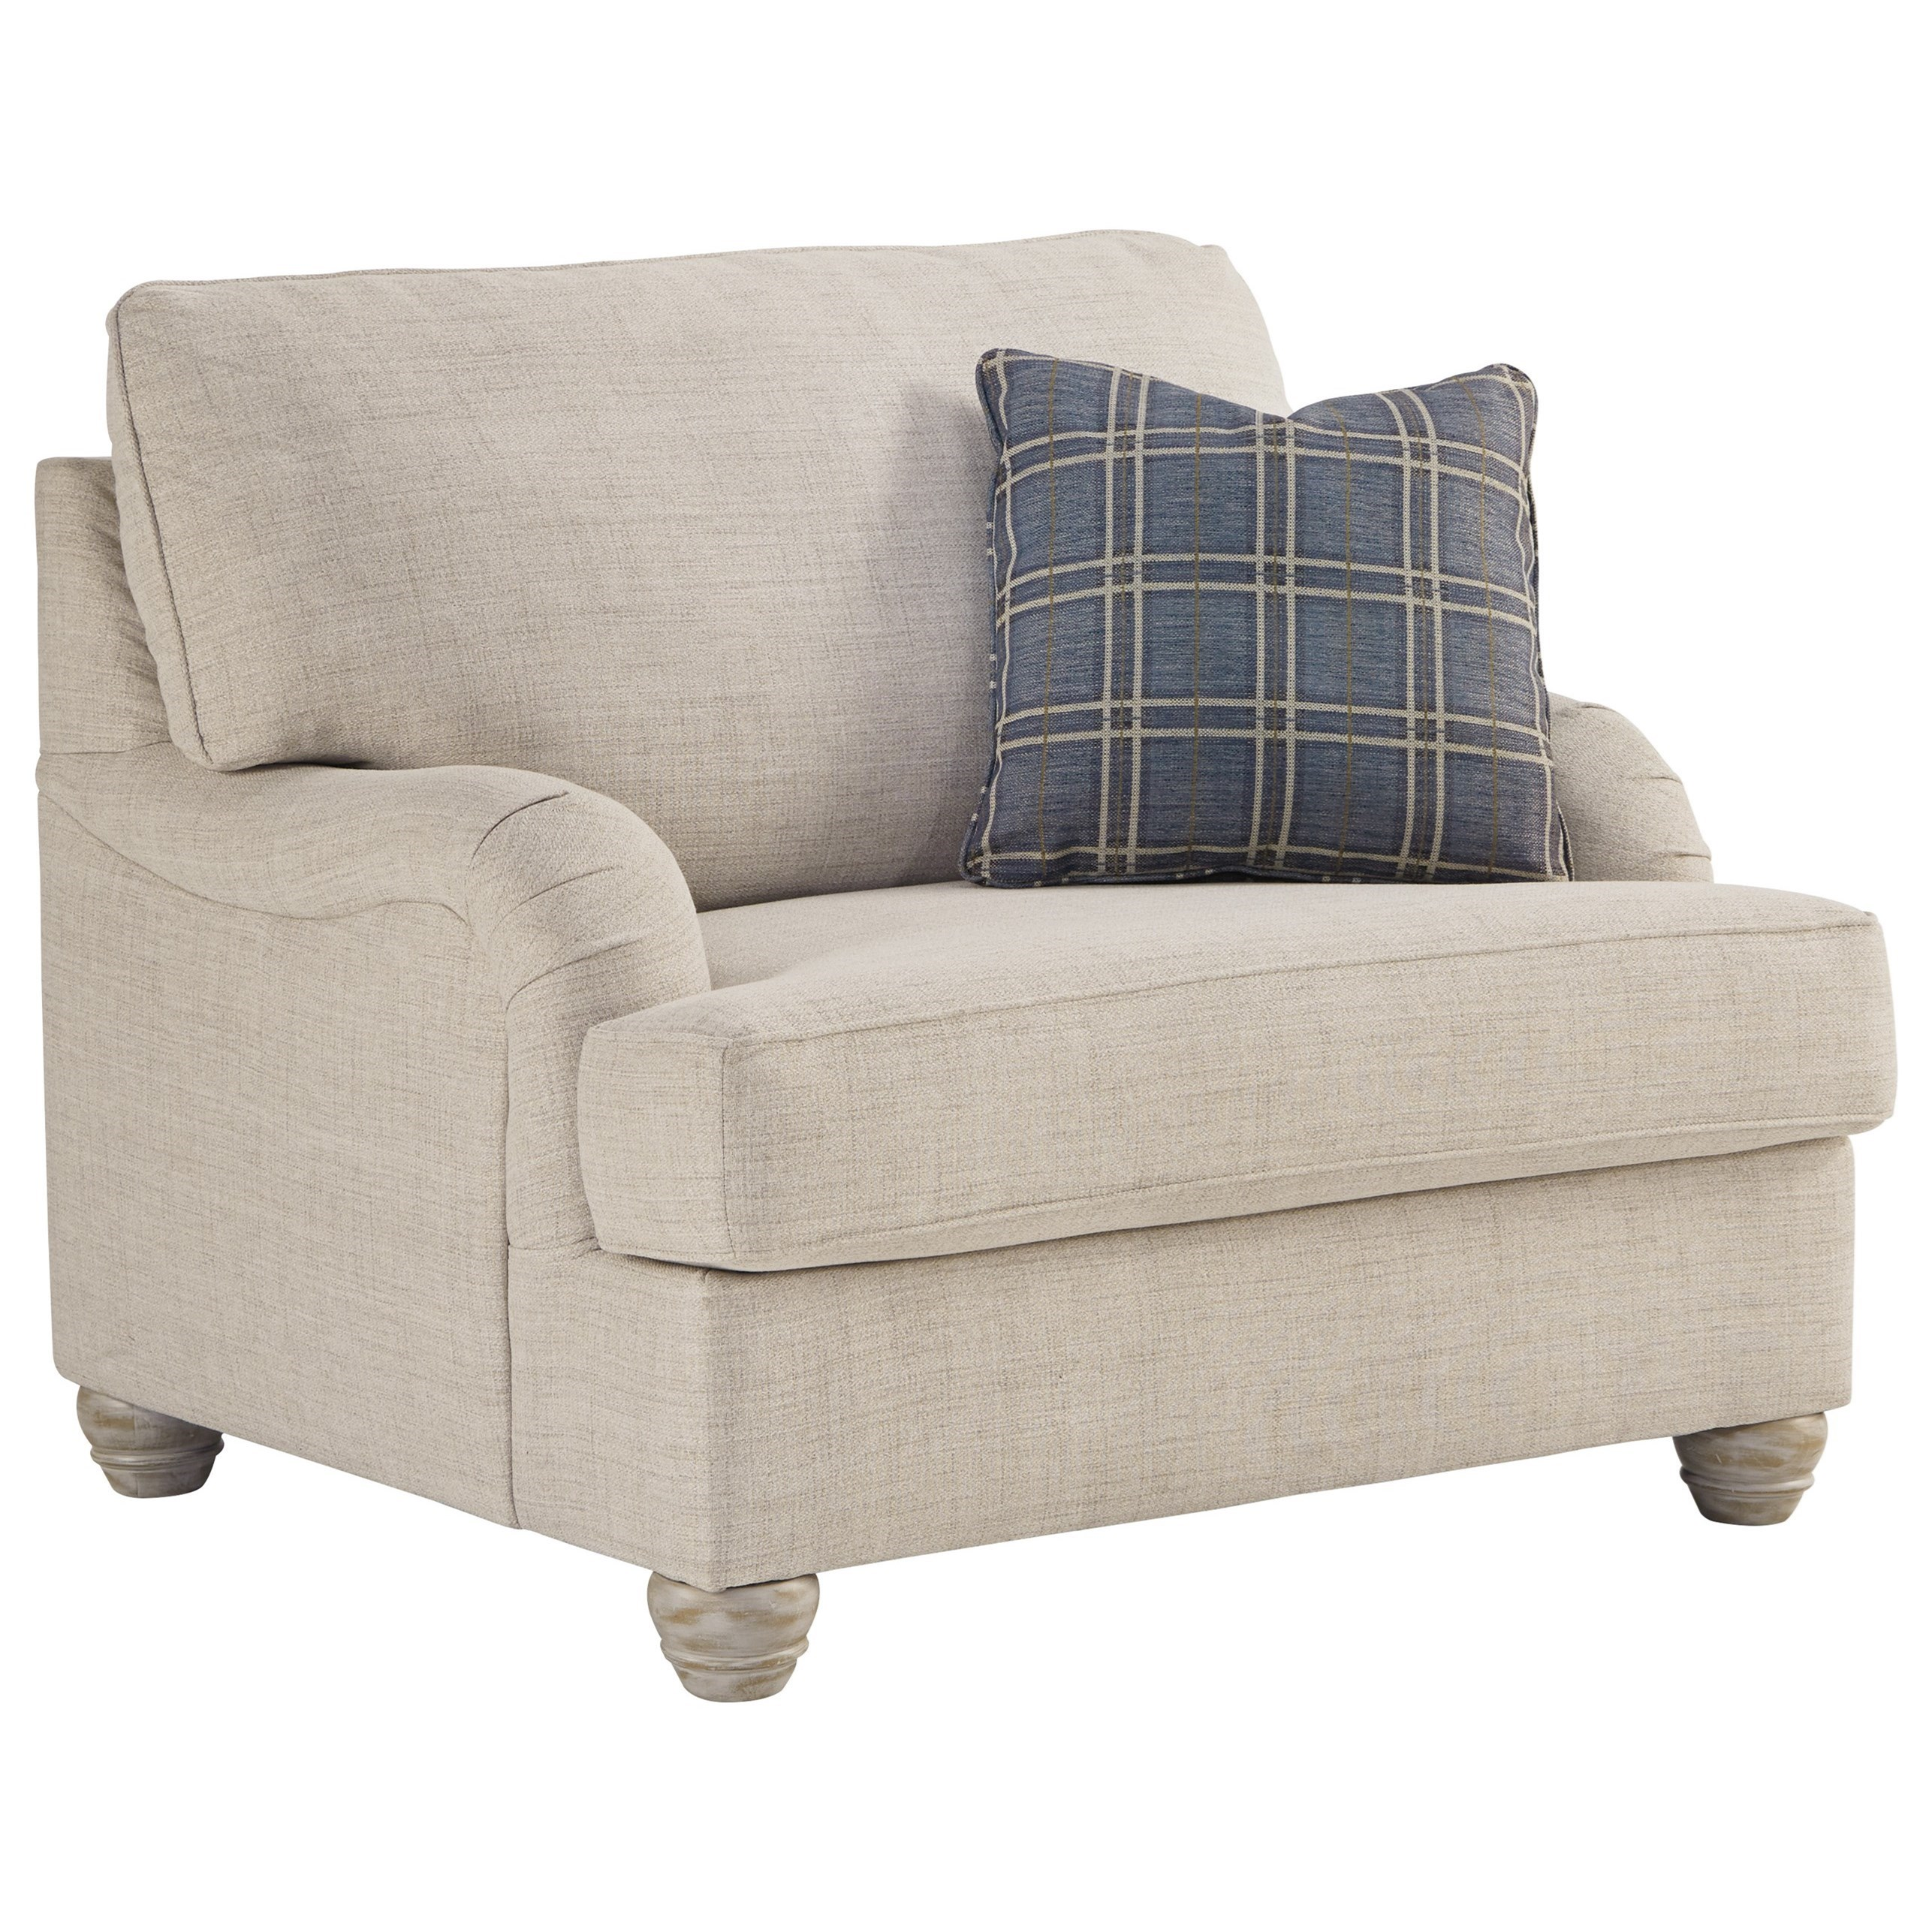 Benchcraft By Ashley Traemore Transitional Chair And A